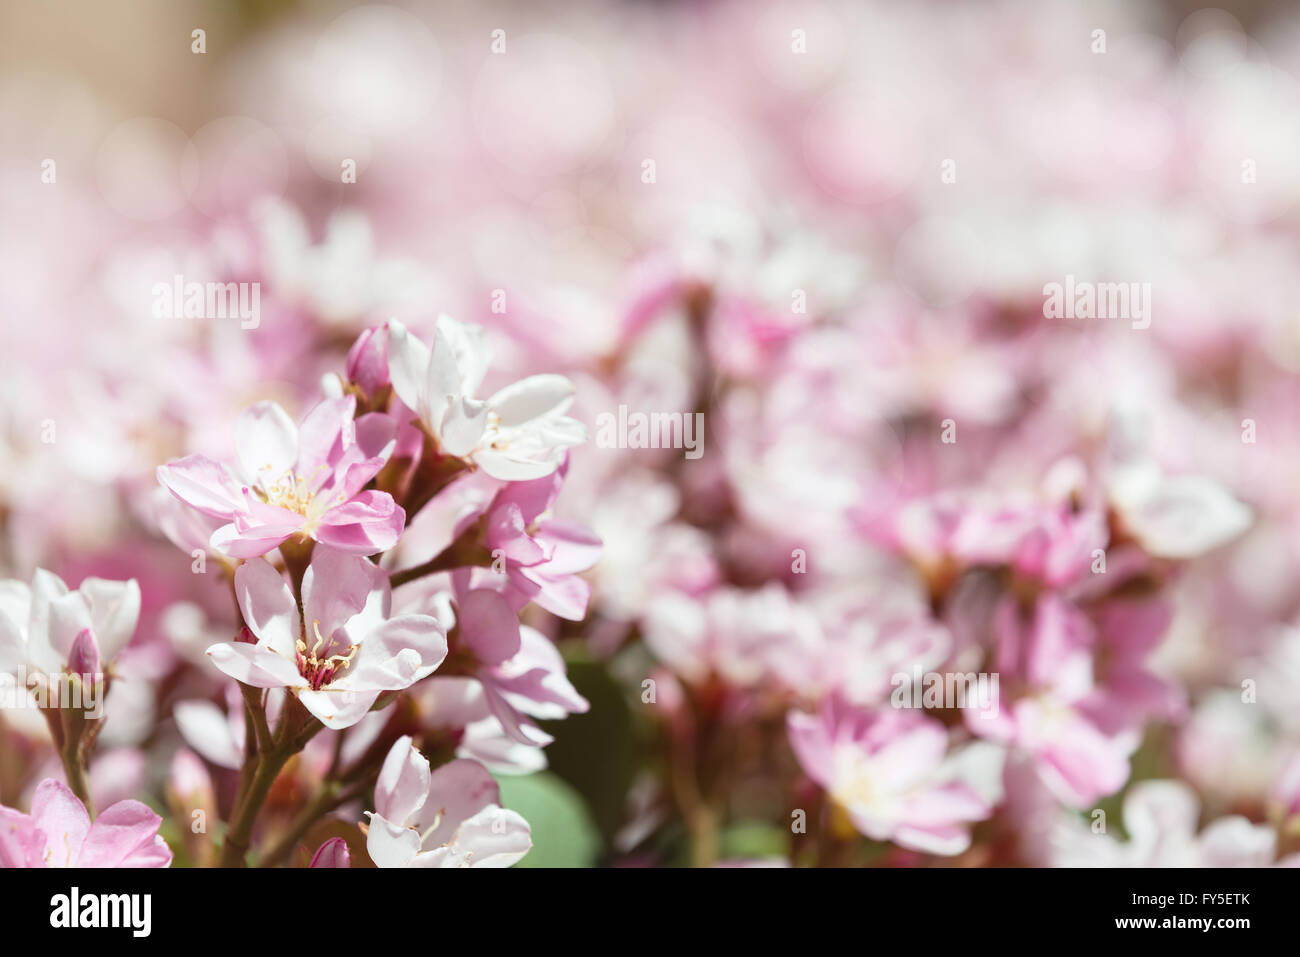 Indian hawthorn rhaphiolepis indica pink lady flowers blooming indian hawthorn rhaphiolepis indica pink lady flowers blooming in spring time dhlflorist Choice Image